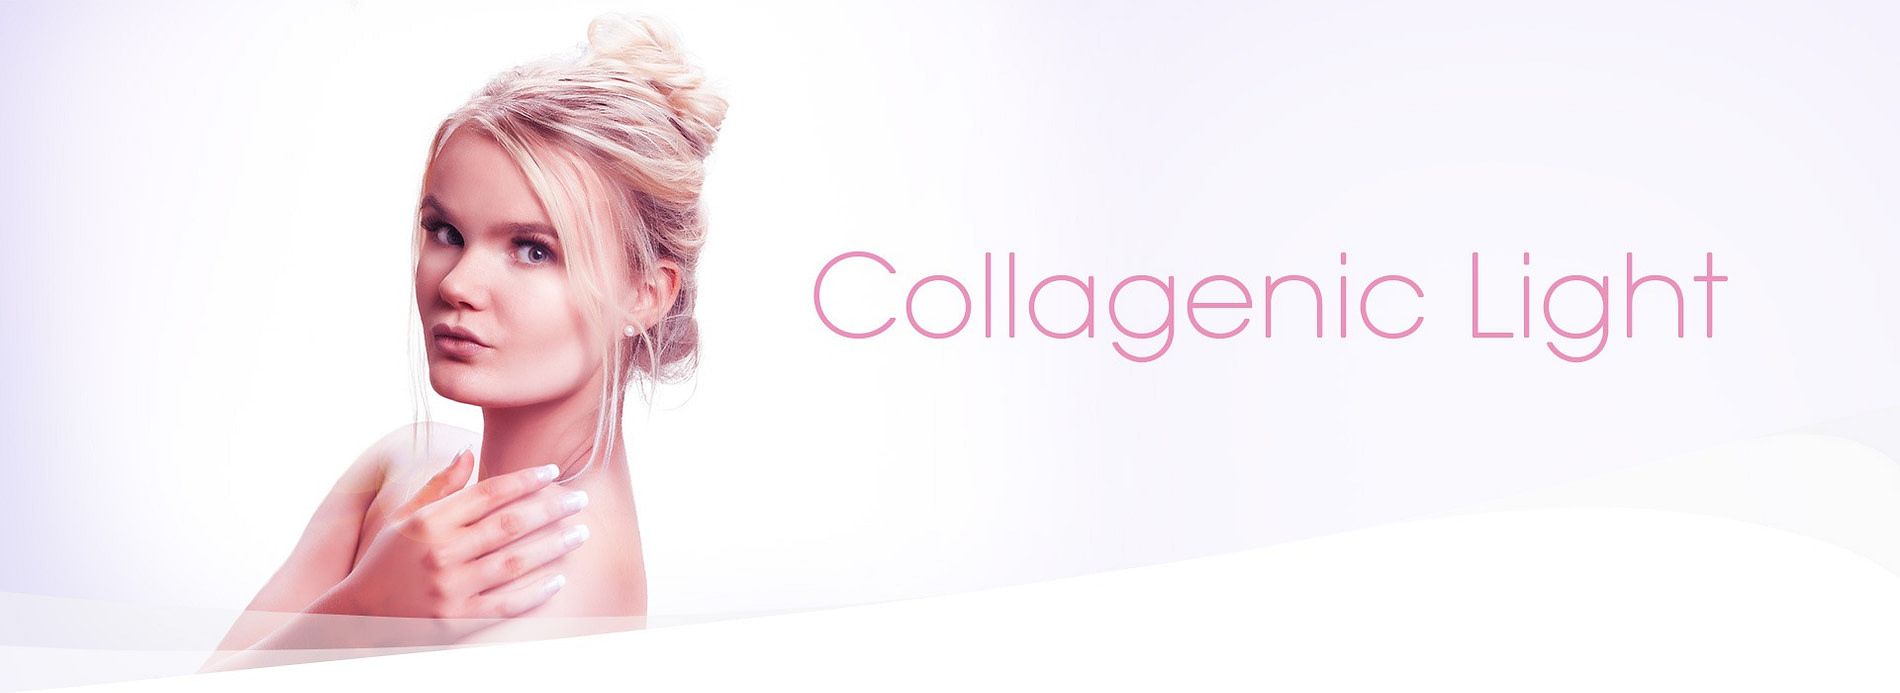 Dr. Muller header Collagenic Light research